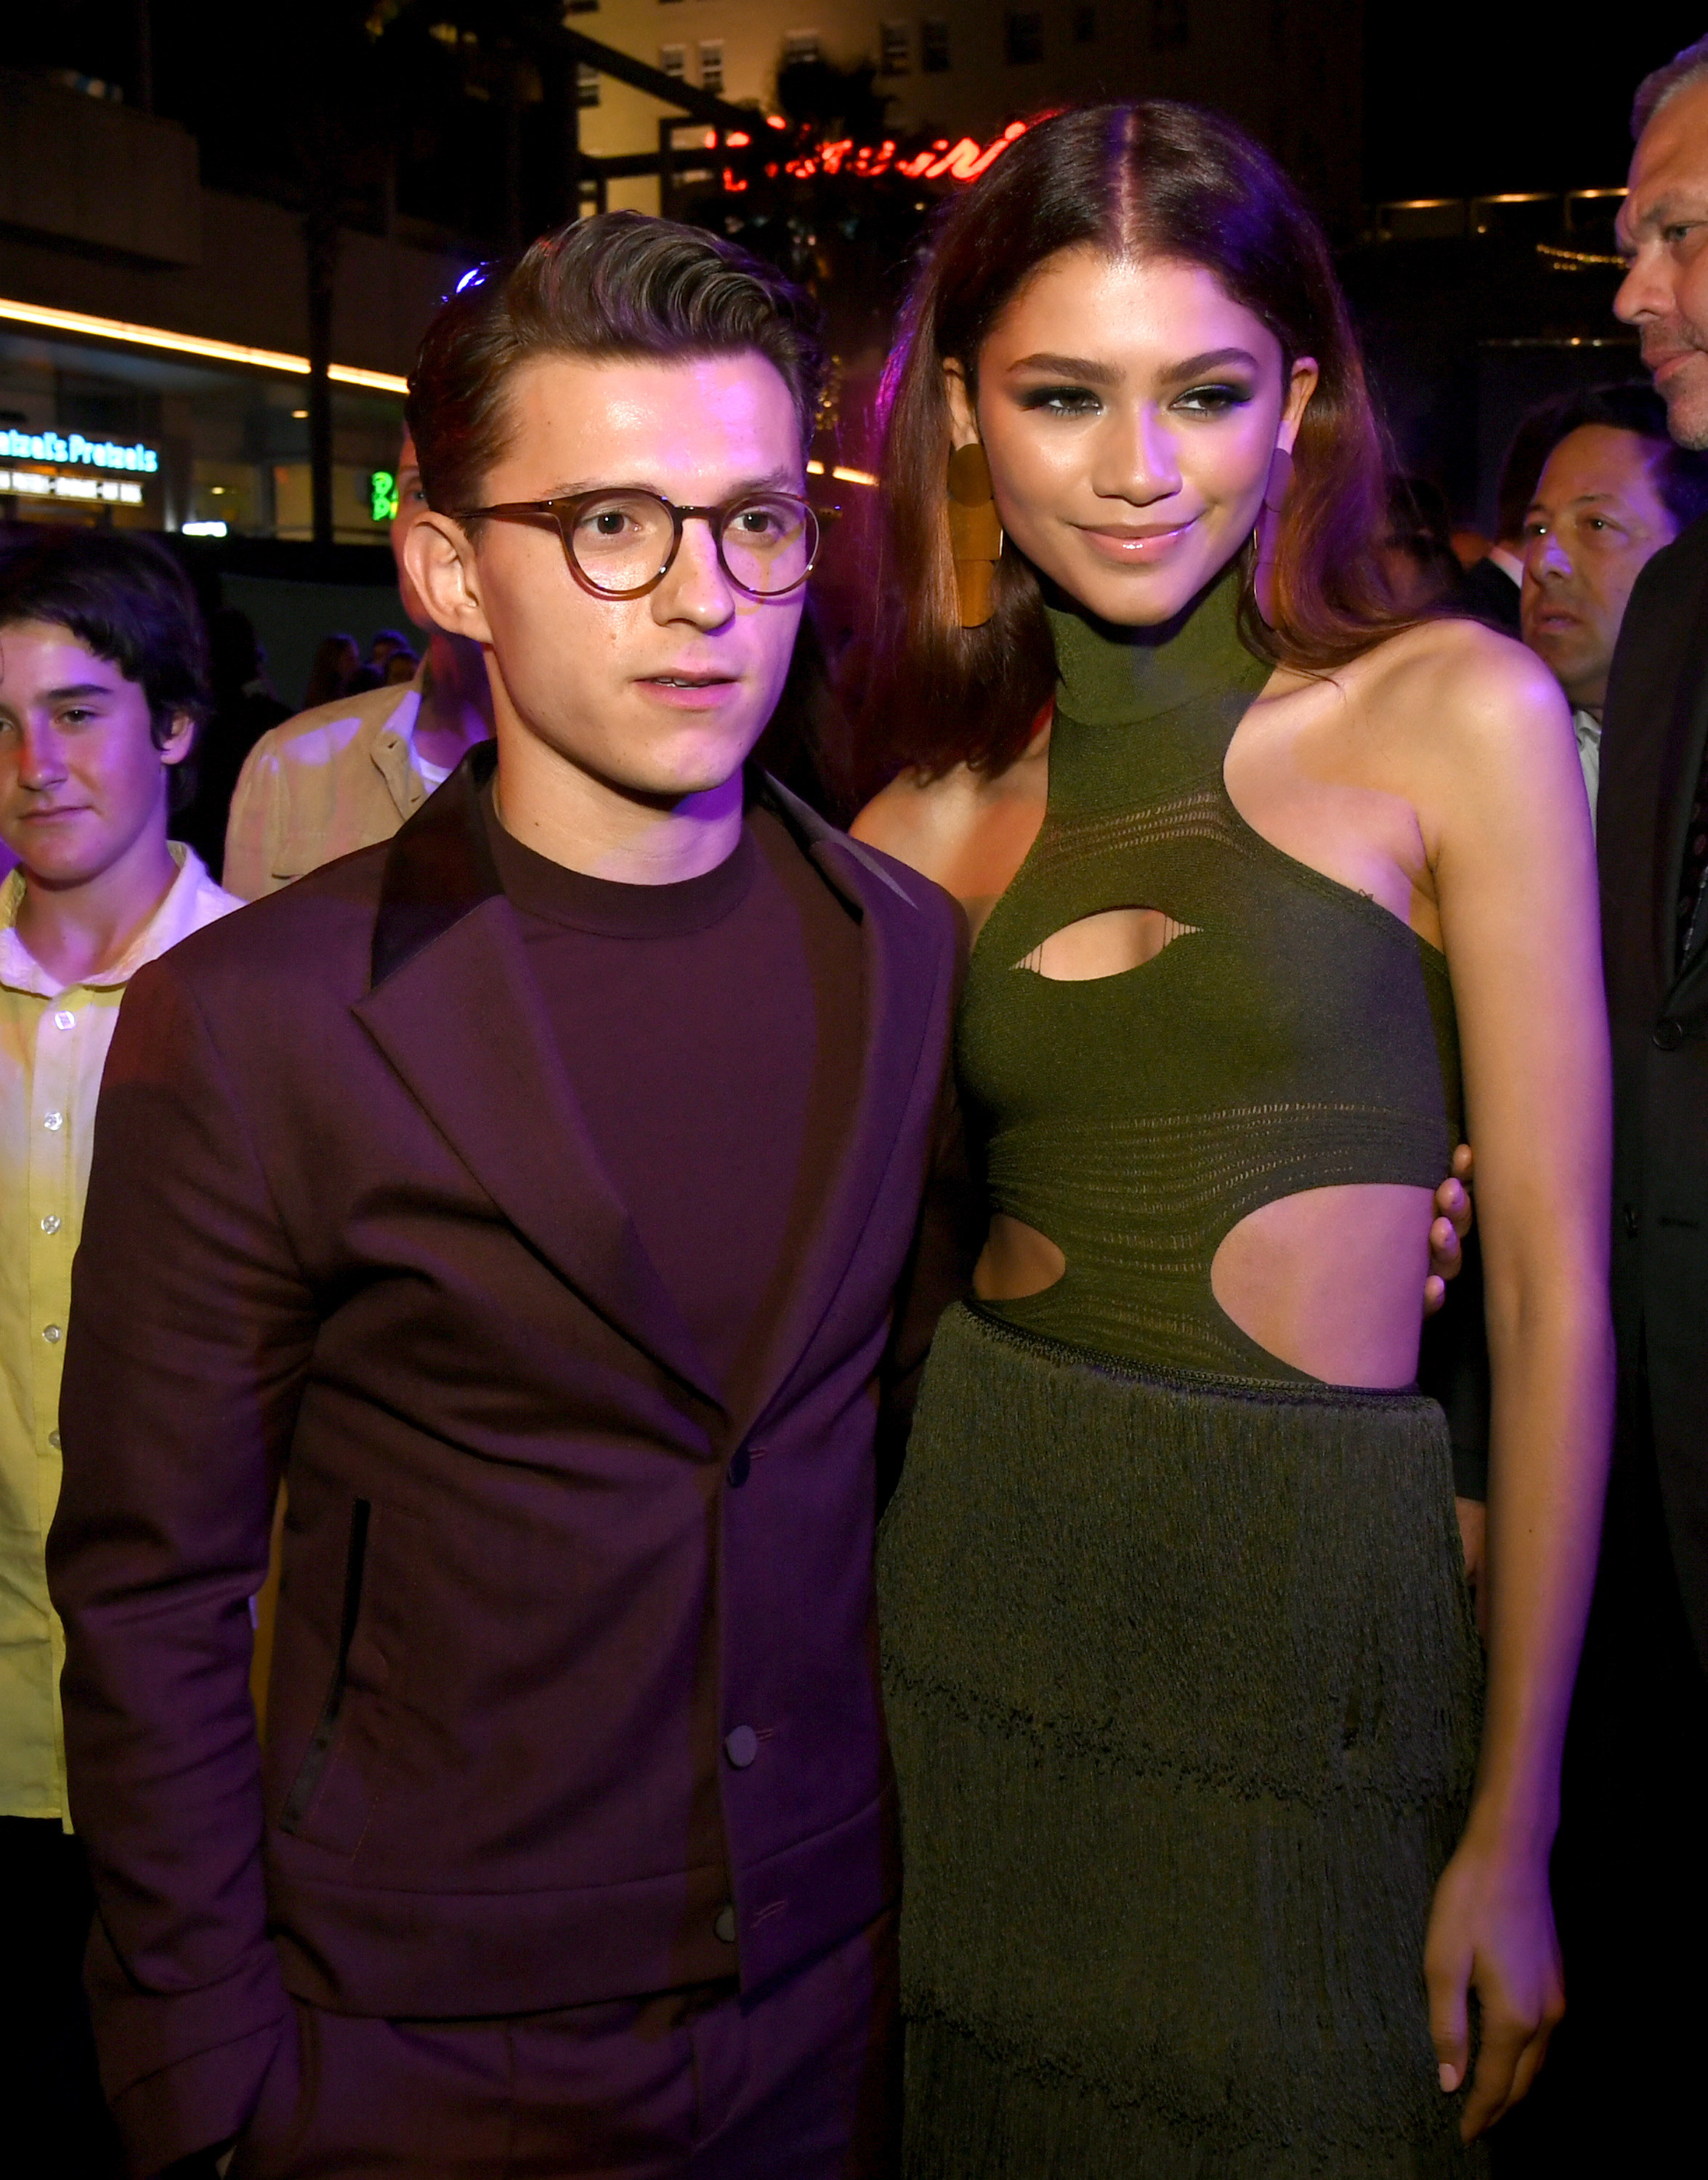 Tom, in a monochrome suit, and Zendaya, in a halter dress with cut-outs, posing together for a photo